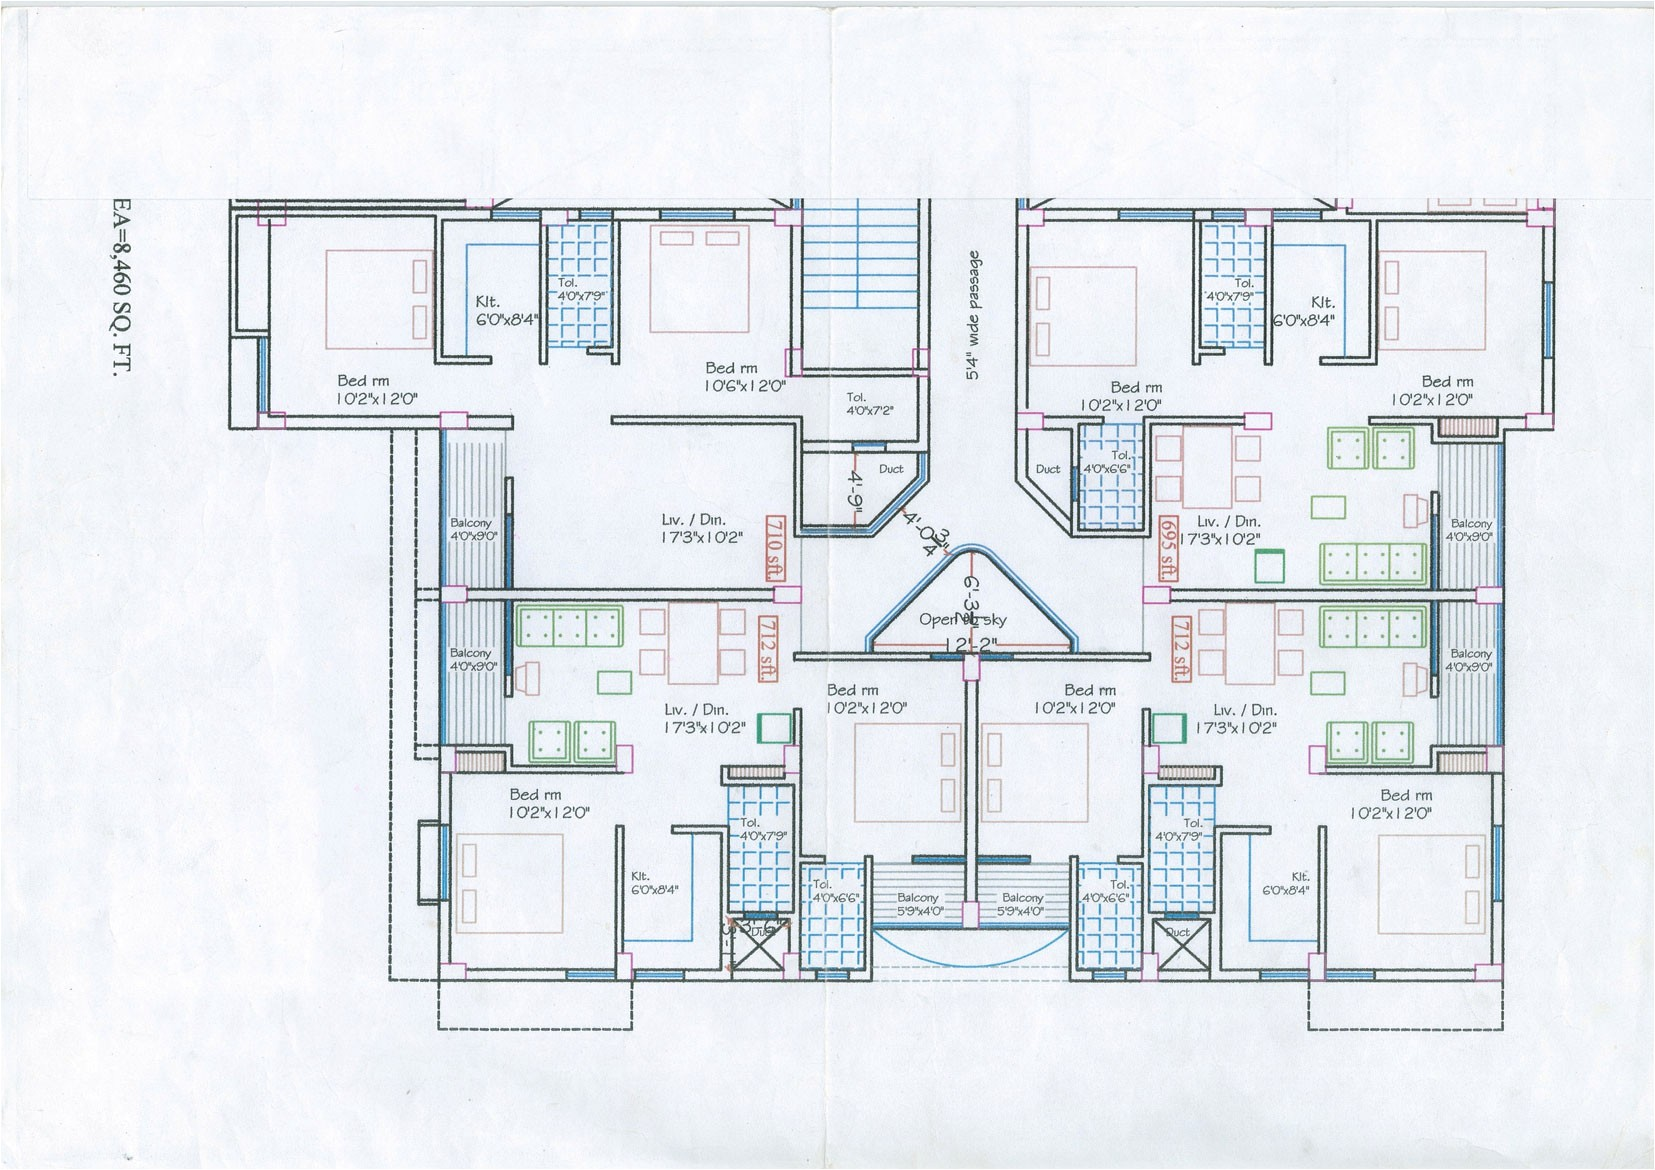 dream house floor plans with others 7d0018ea2efce6a9ca77a986cbd52dc1